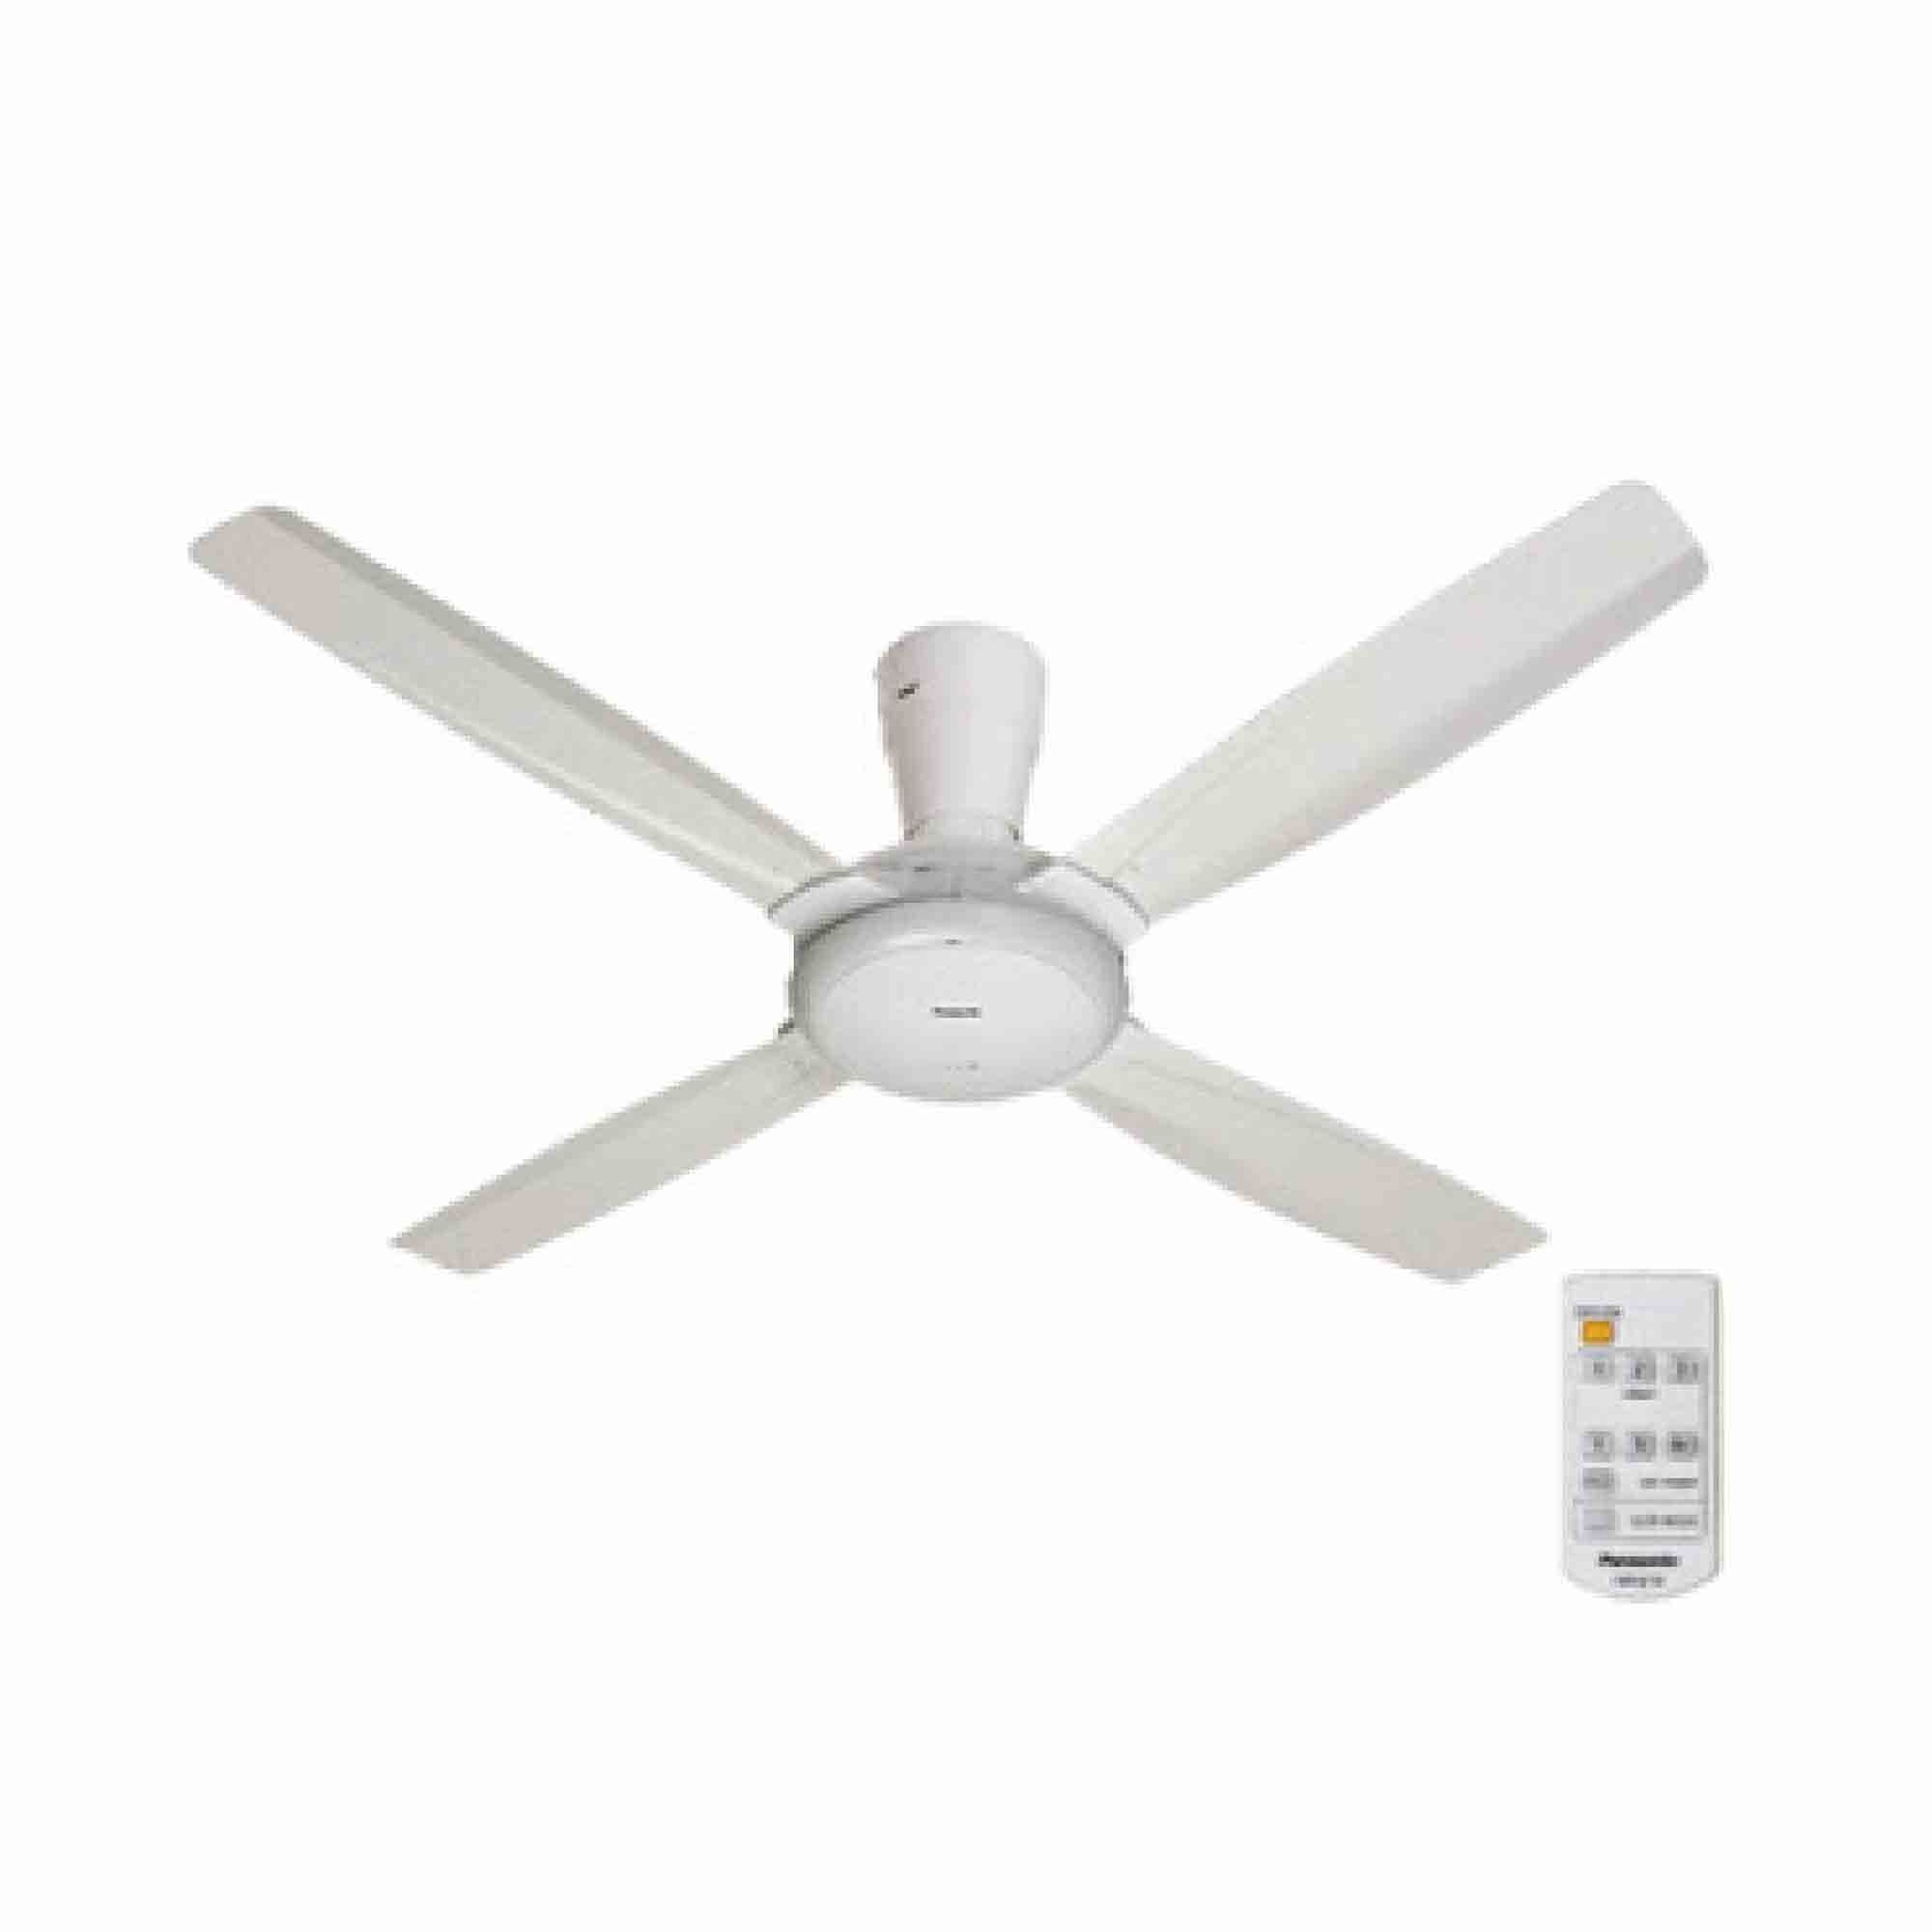 pm fan i end sale ceilings htm bayu ceiling f dg inch sjkelectrical panasonic